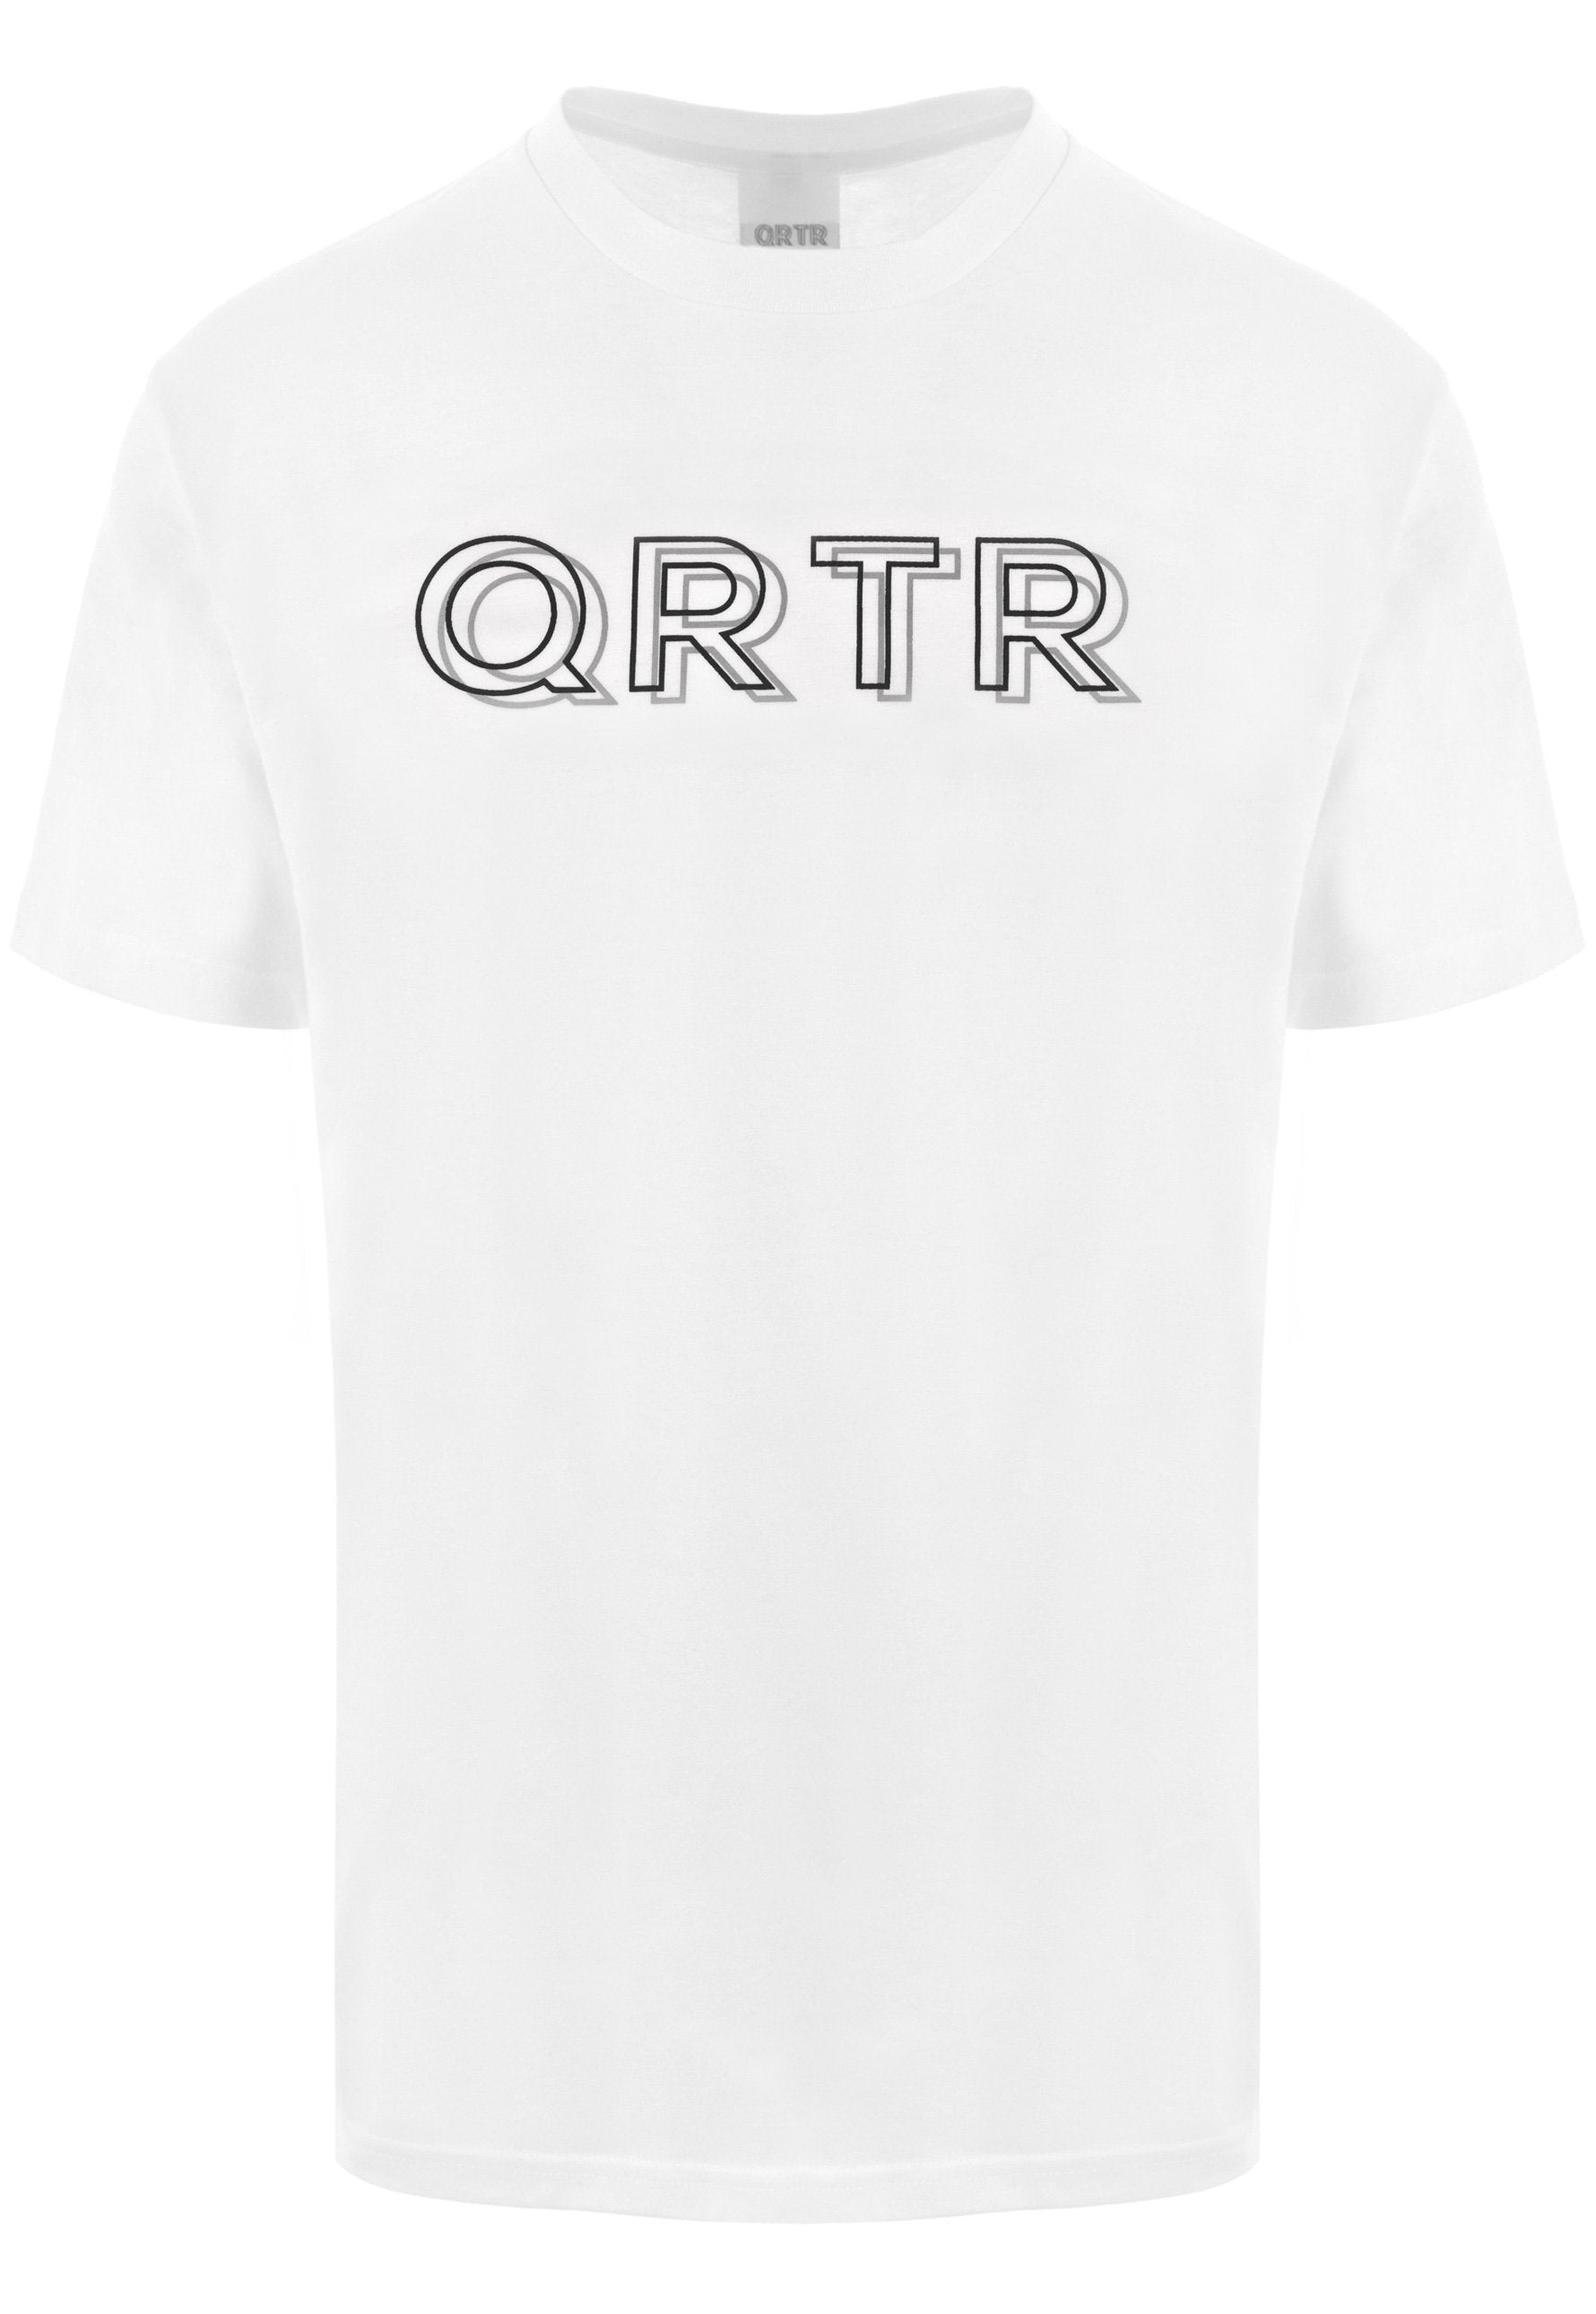 QRTR Drop Logo T-Shirt - QRTR